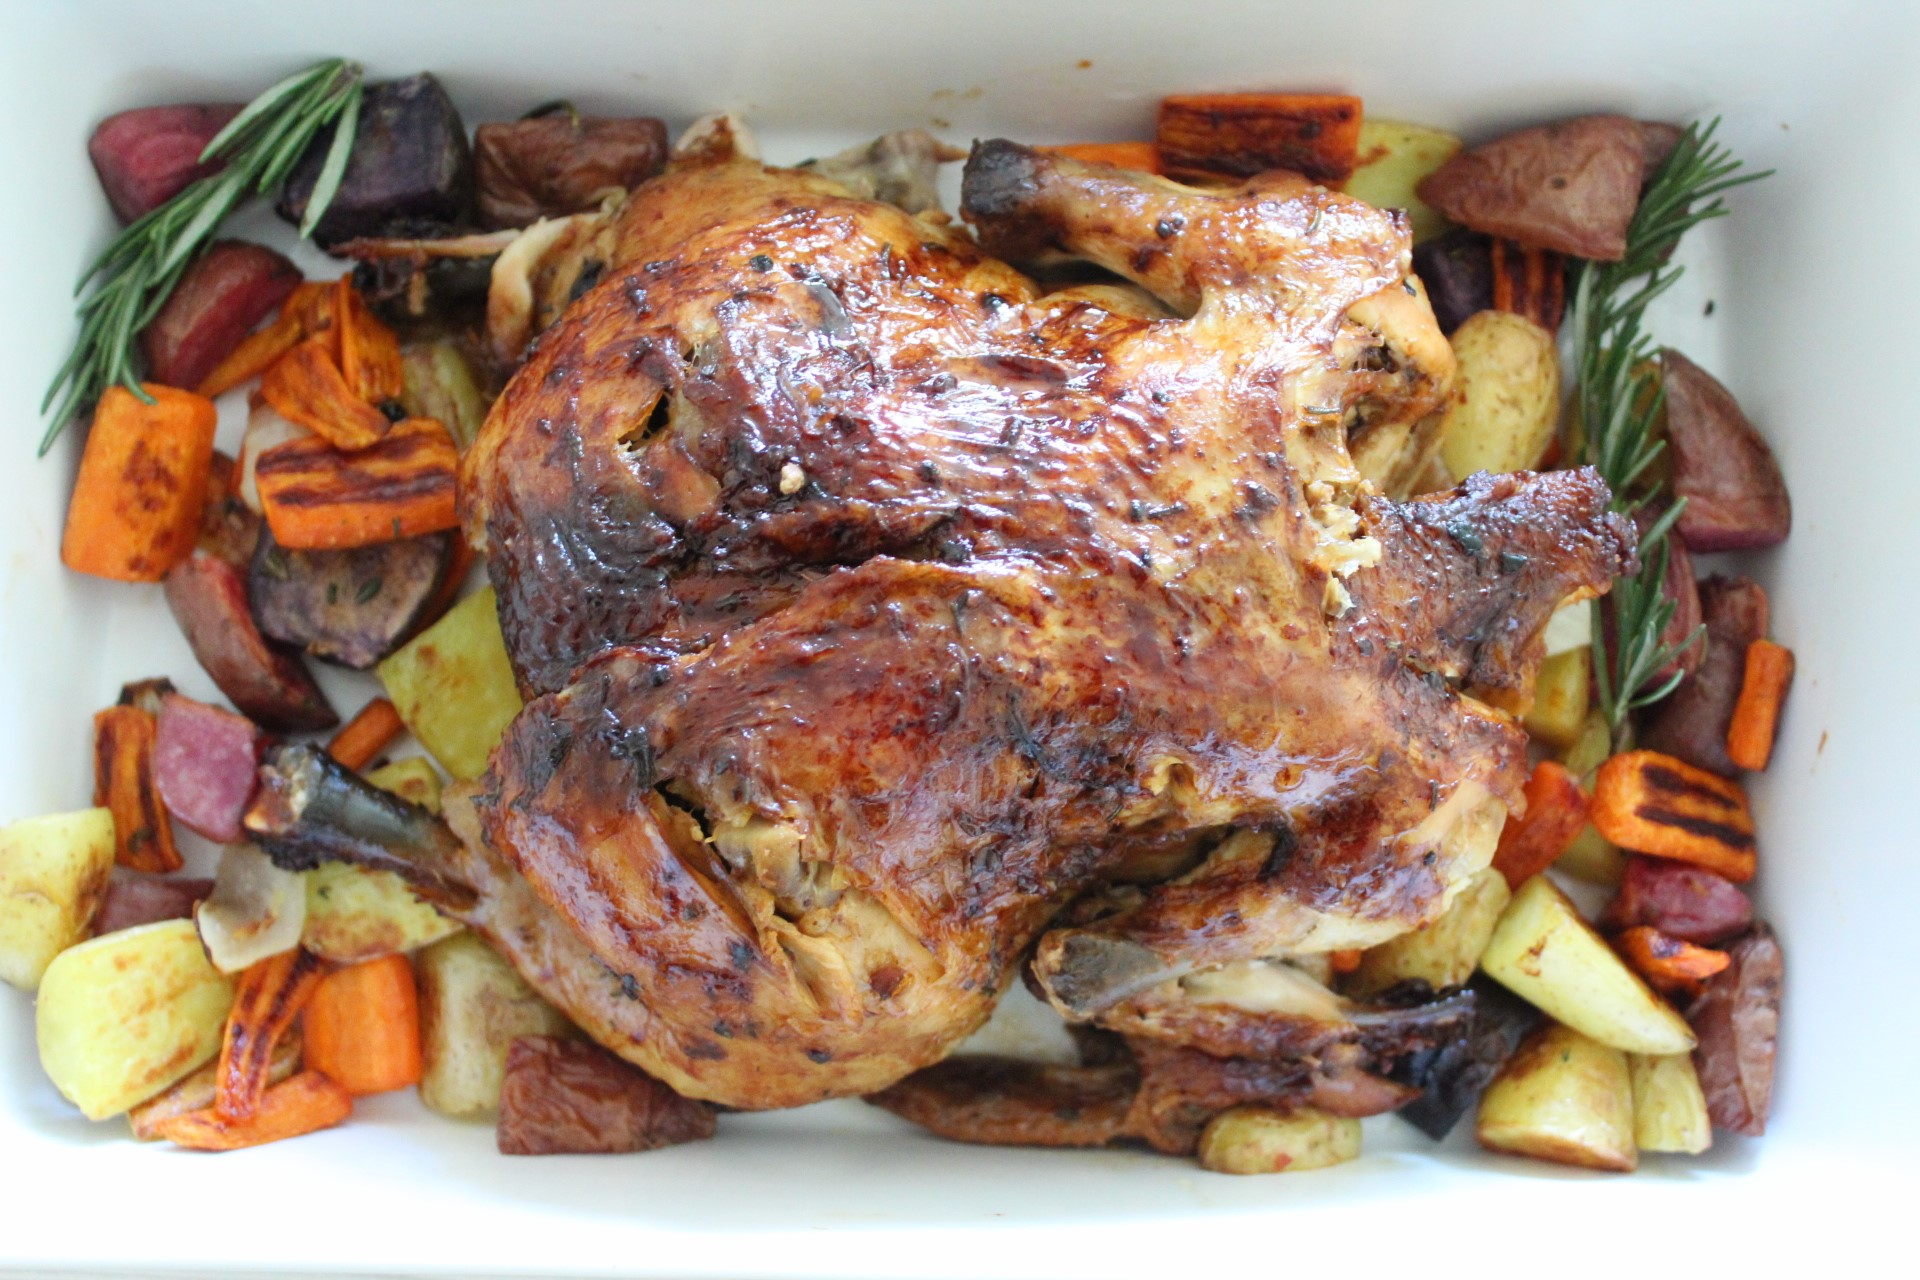 Lemon Garlic and Herb Roasted Chicken